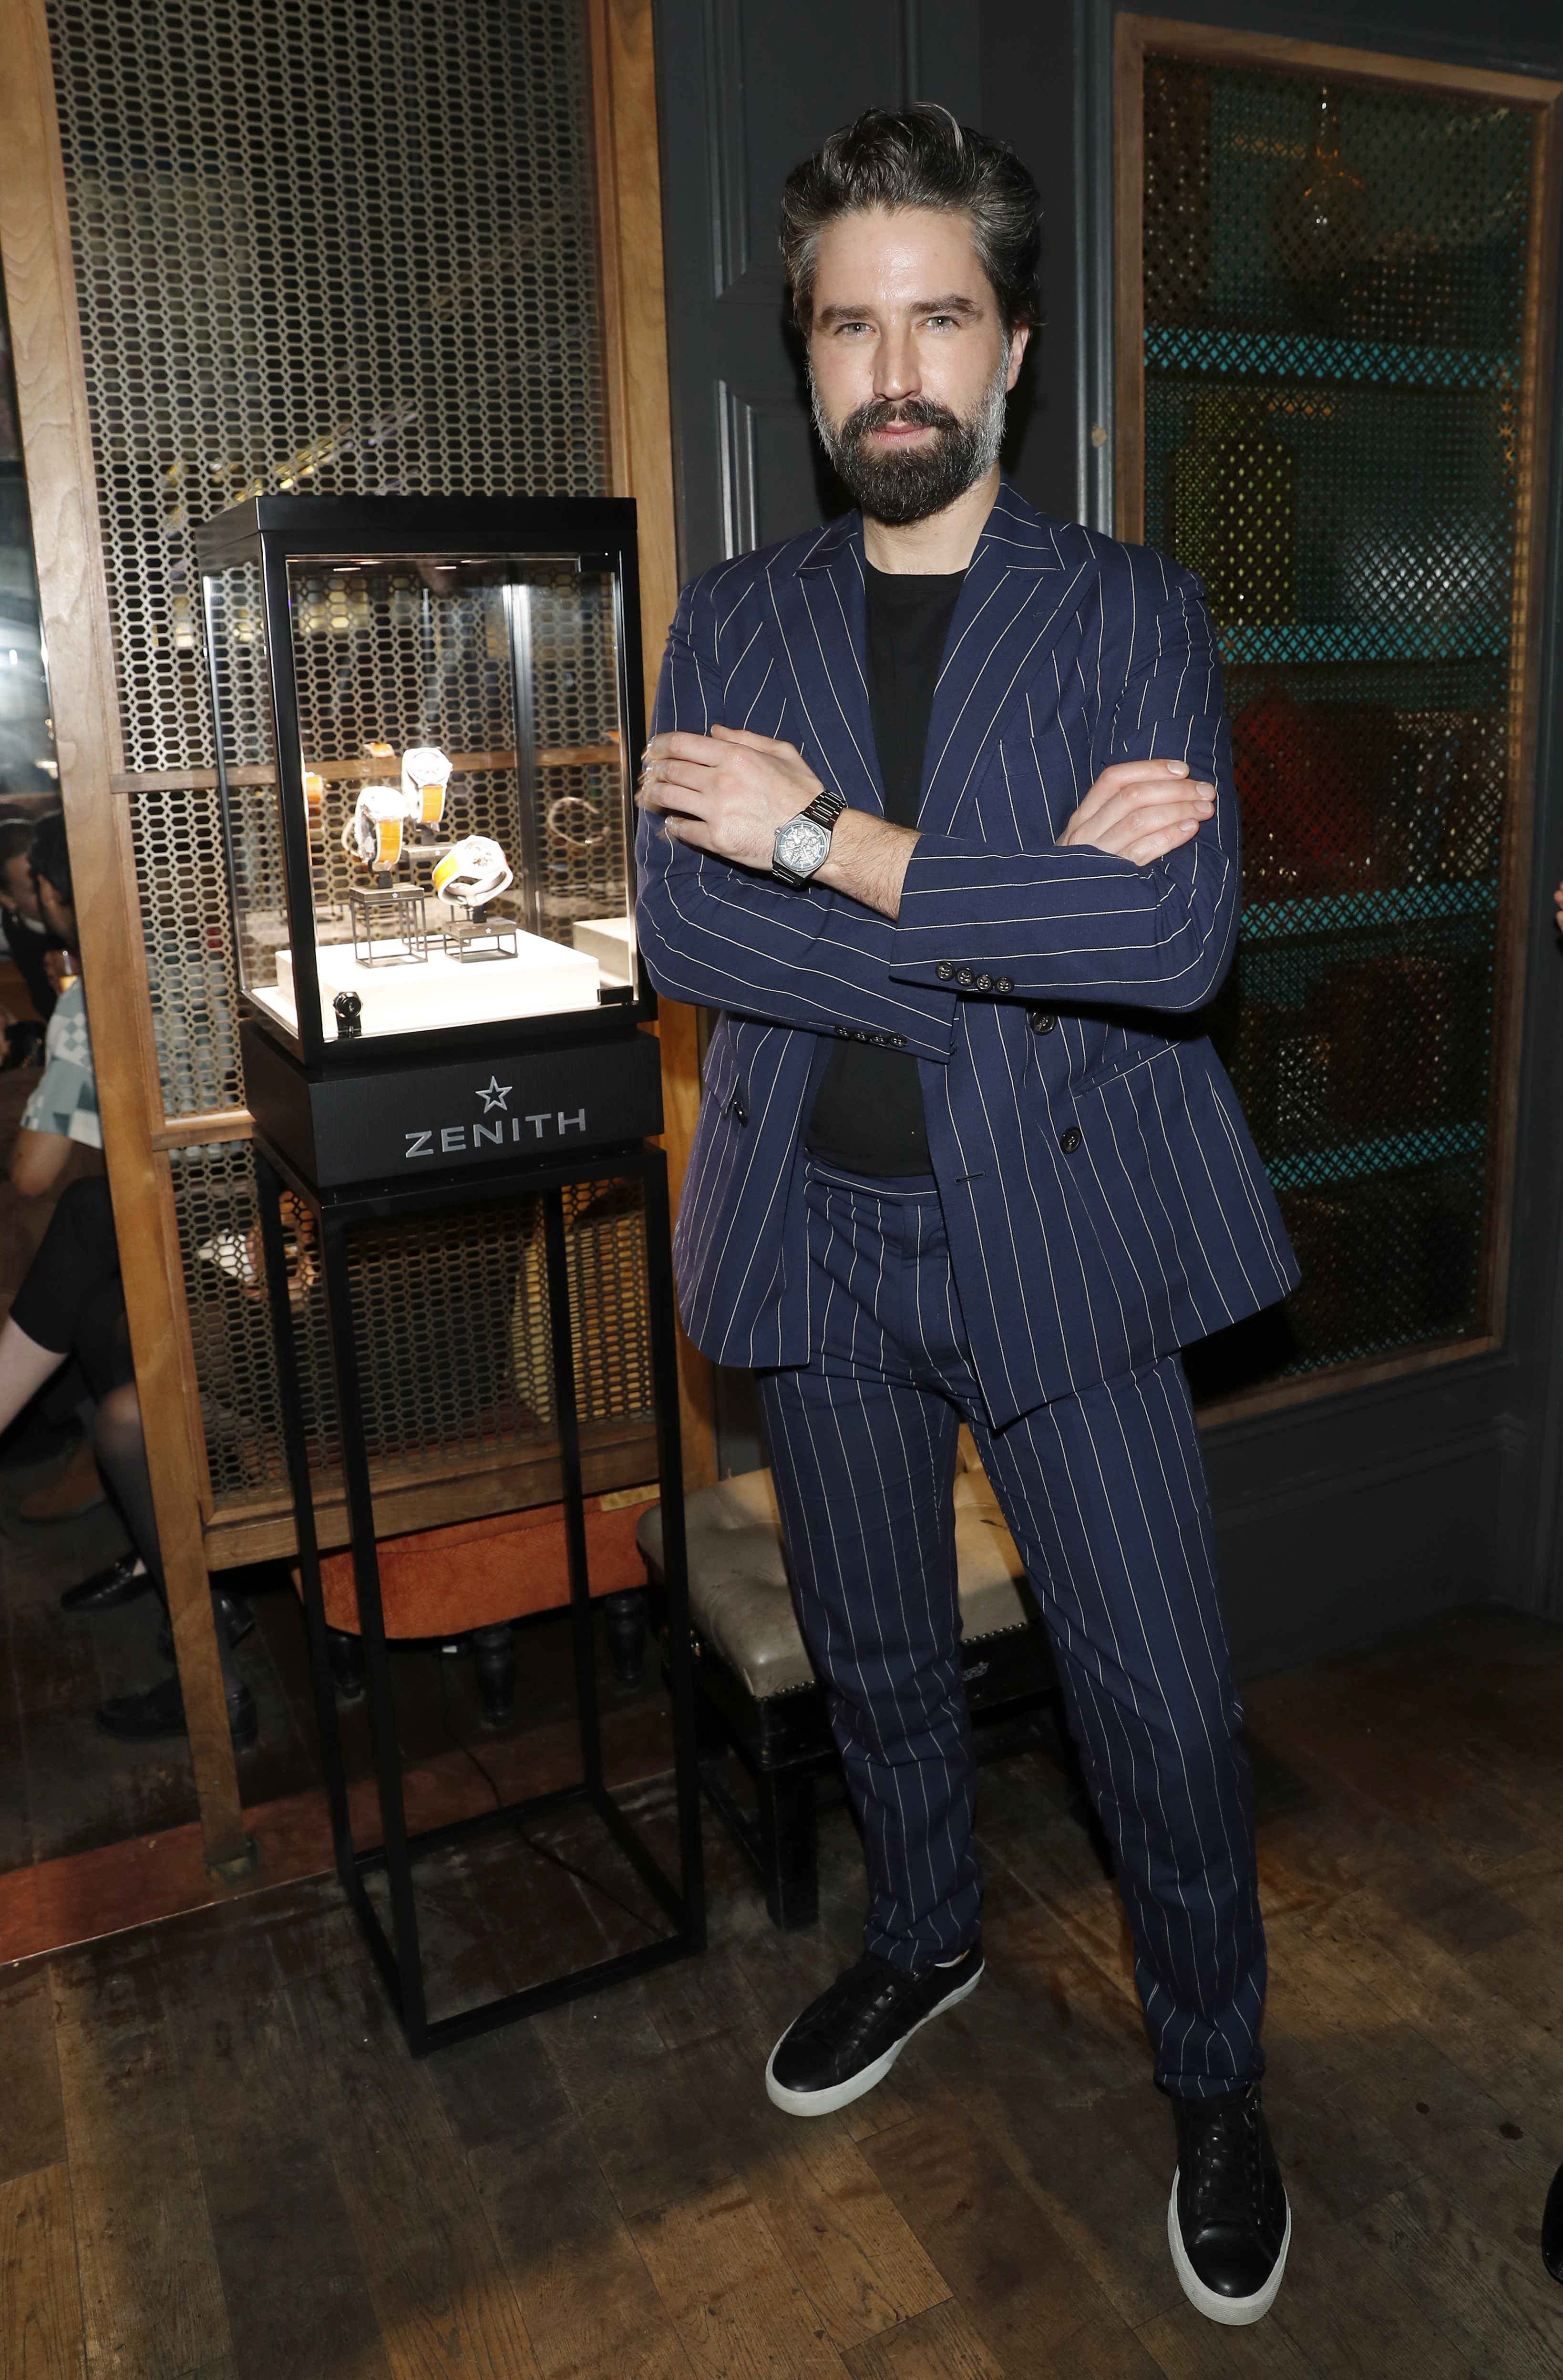 Zenith Watches And Swizz Beatz Host A Party At The Scotch Nightclub To Celebrate The Defy Collection